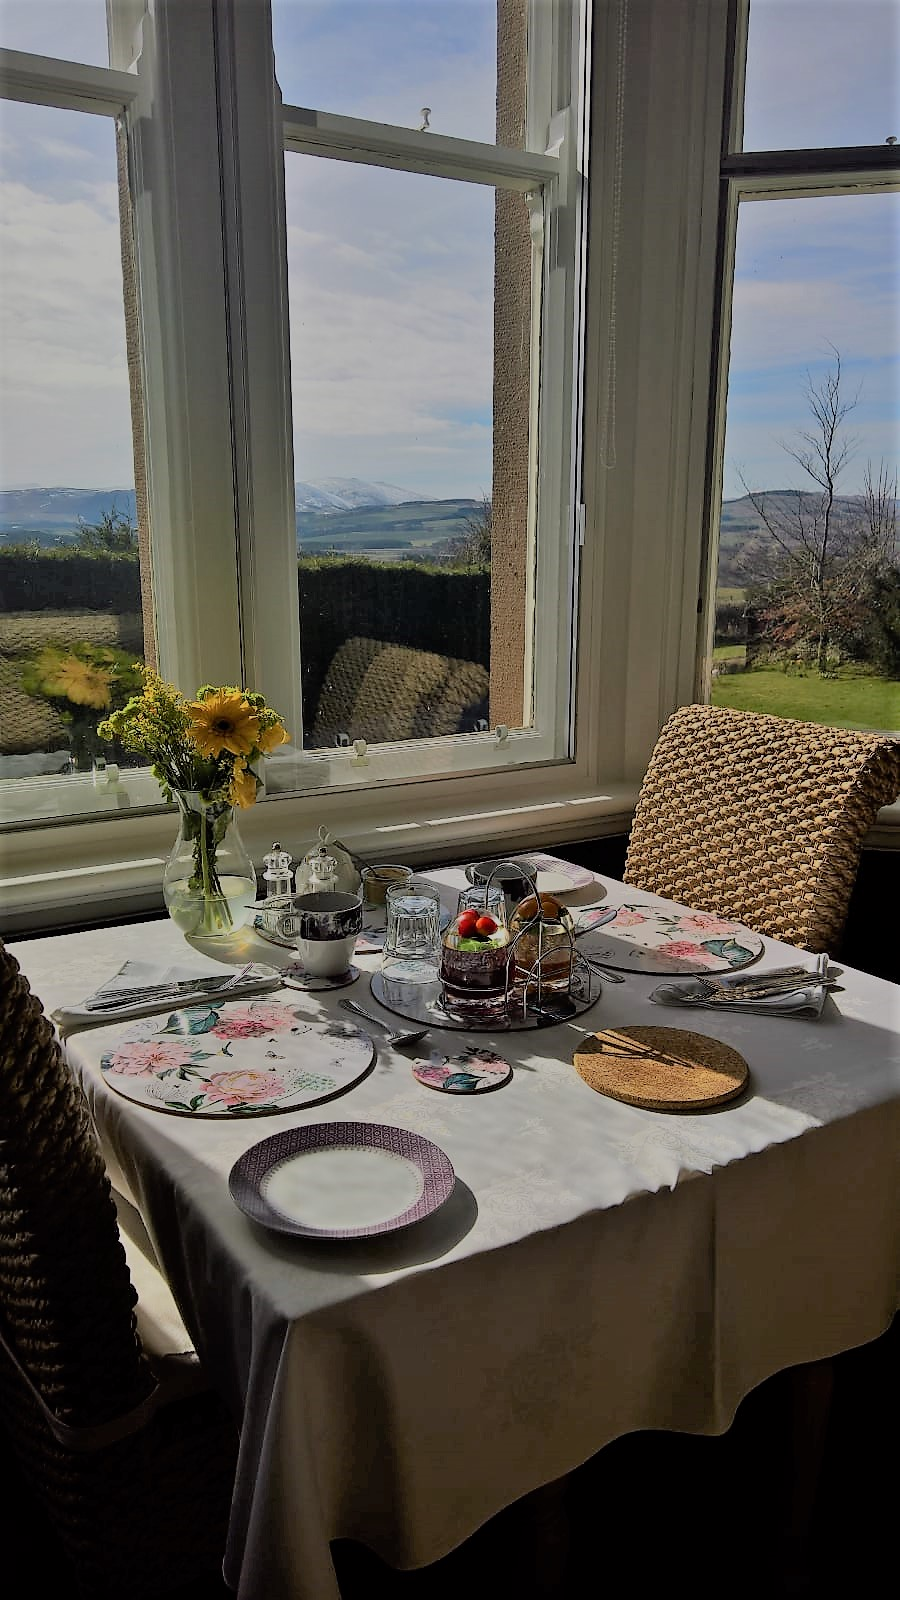 Hay Farm House Bed and Breakfast in North Northumberland